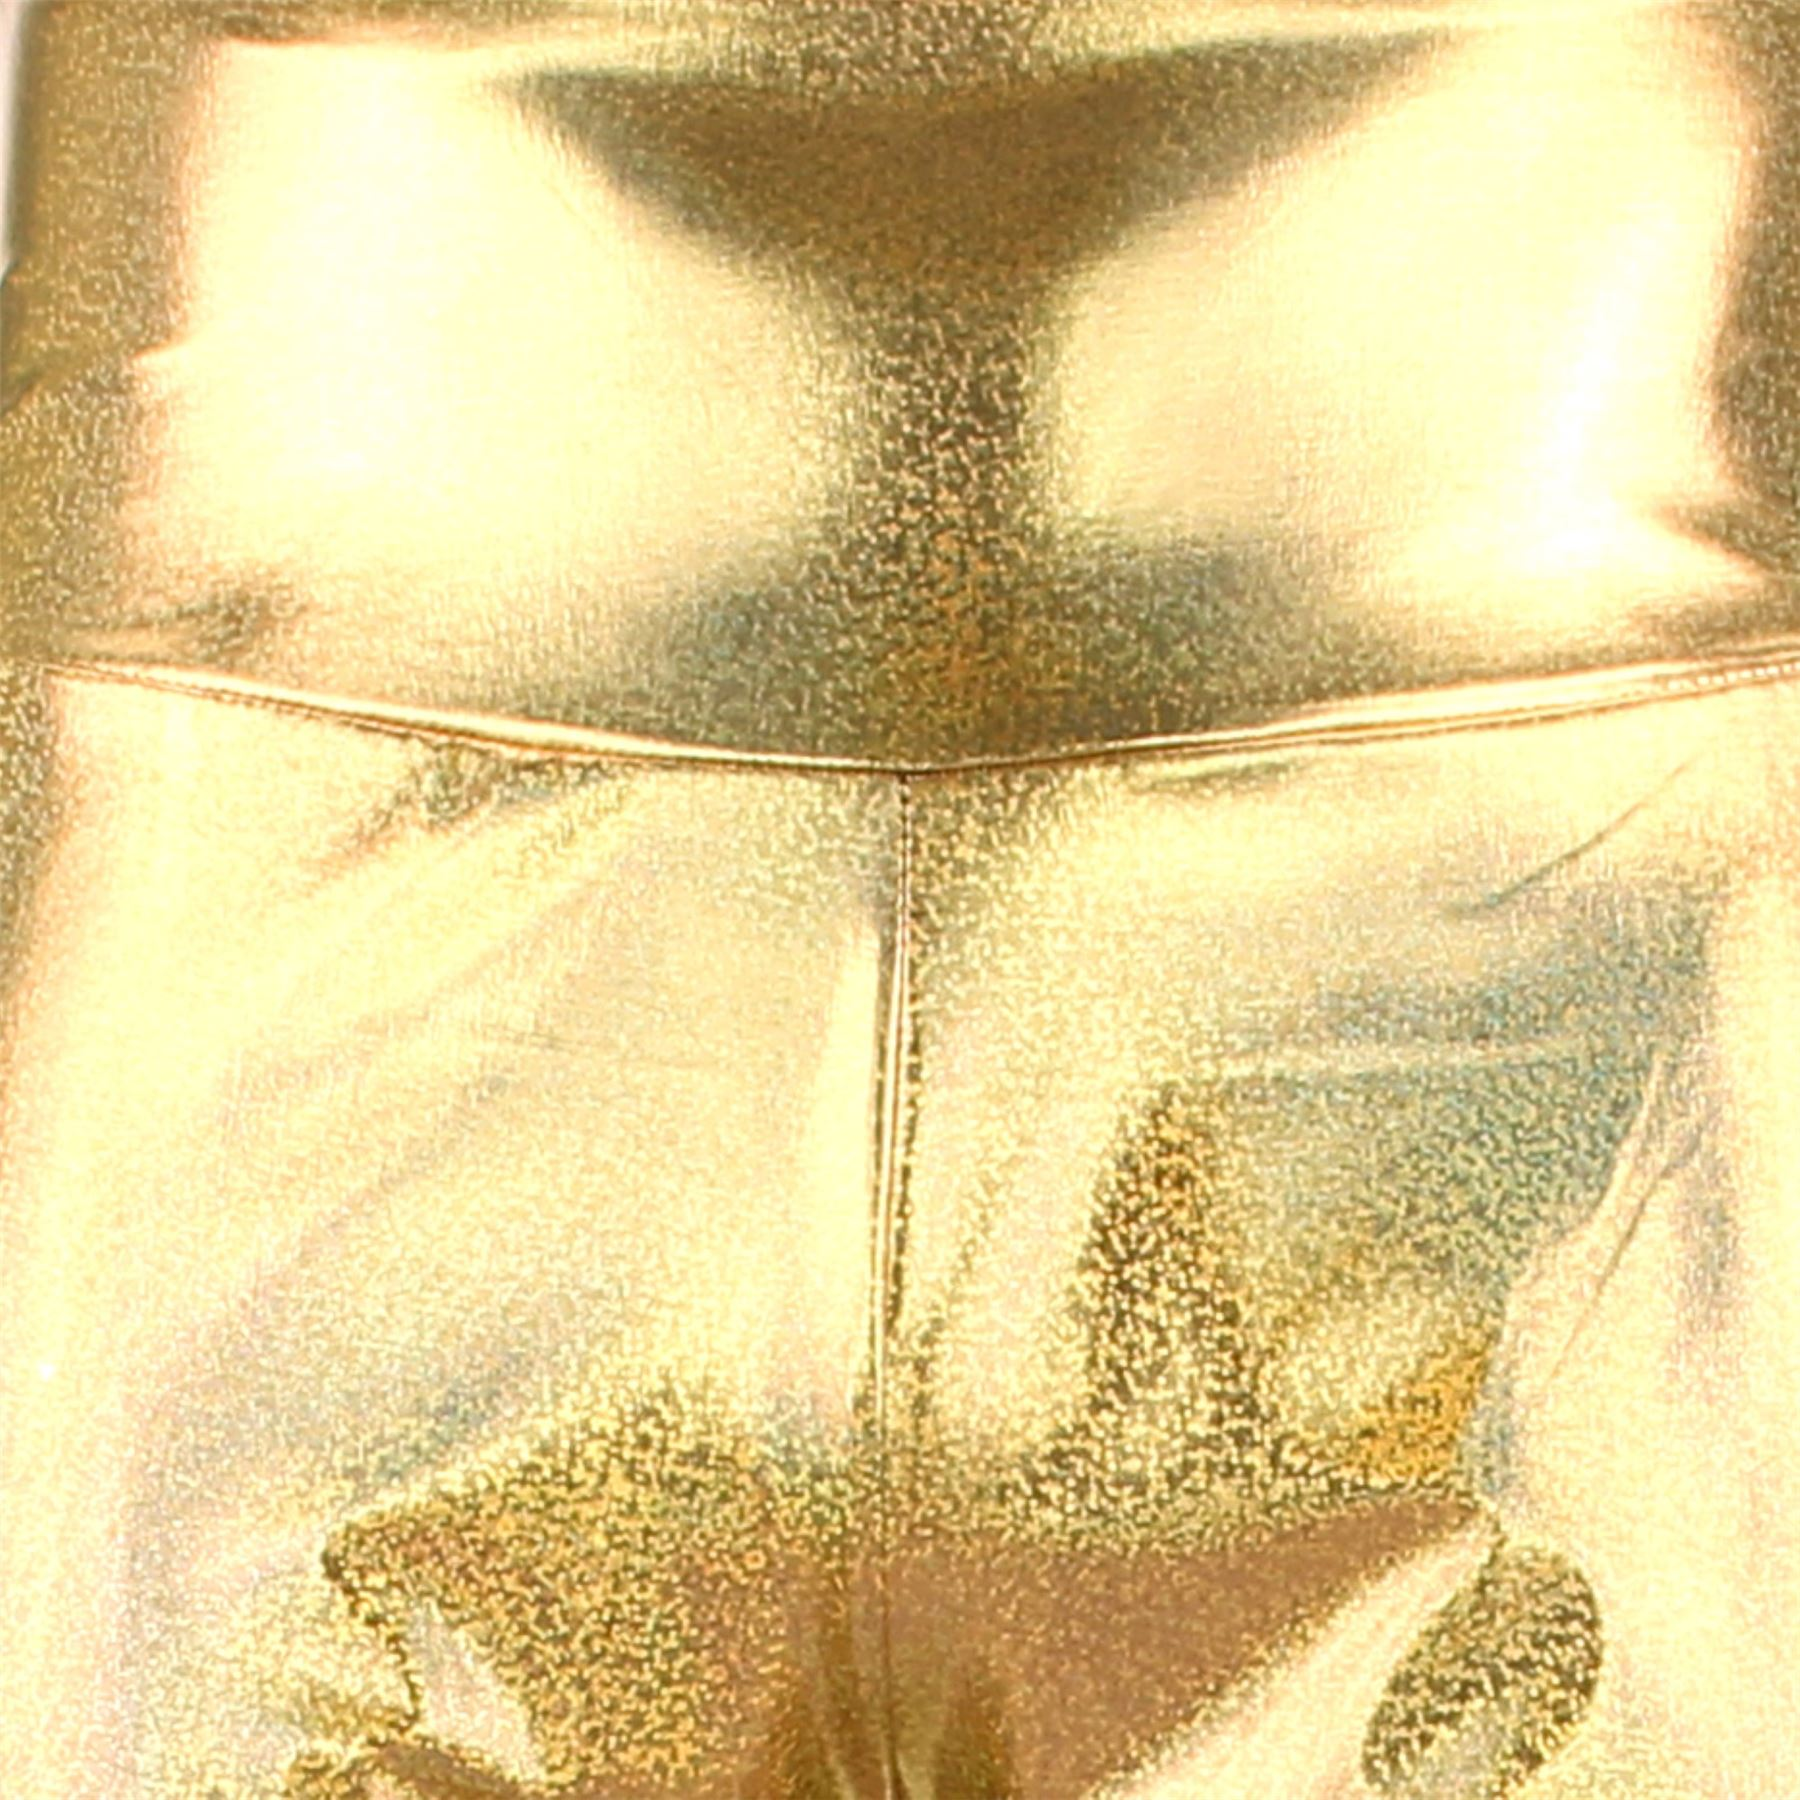 Shiny-Metallic-Flares-Trousers-Firefly-Pants-Party-Dressing-up thumbnail 10